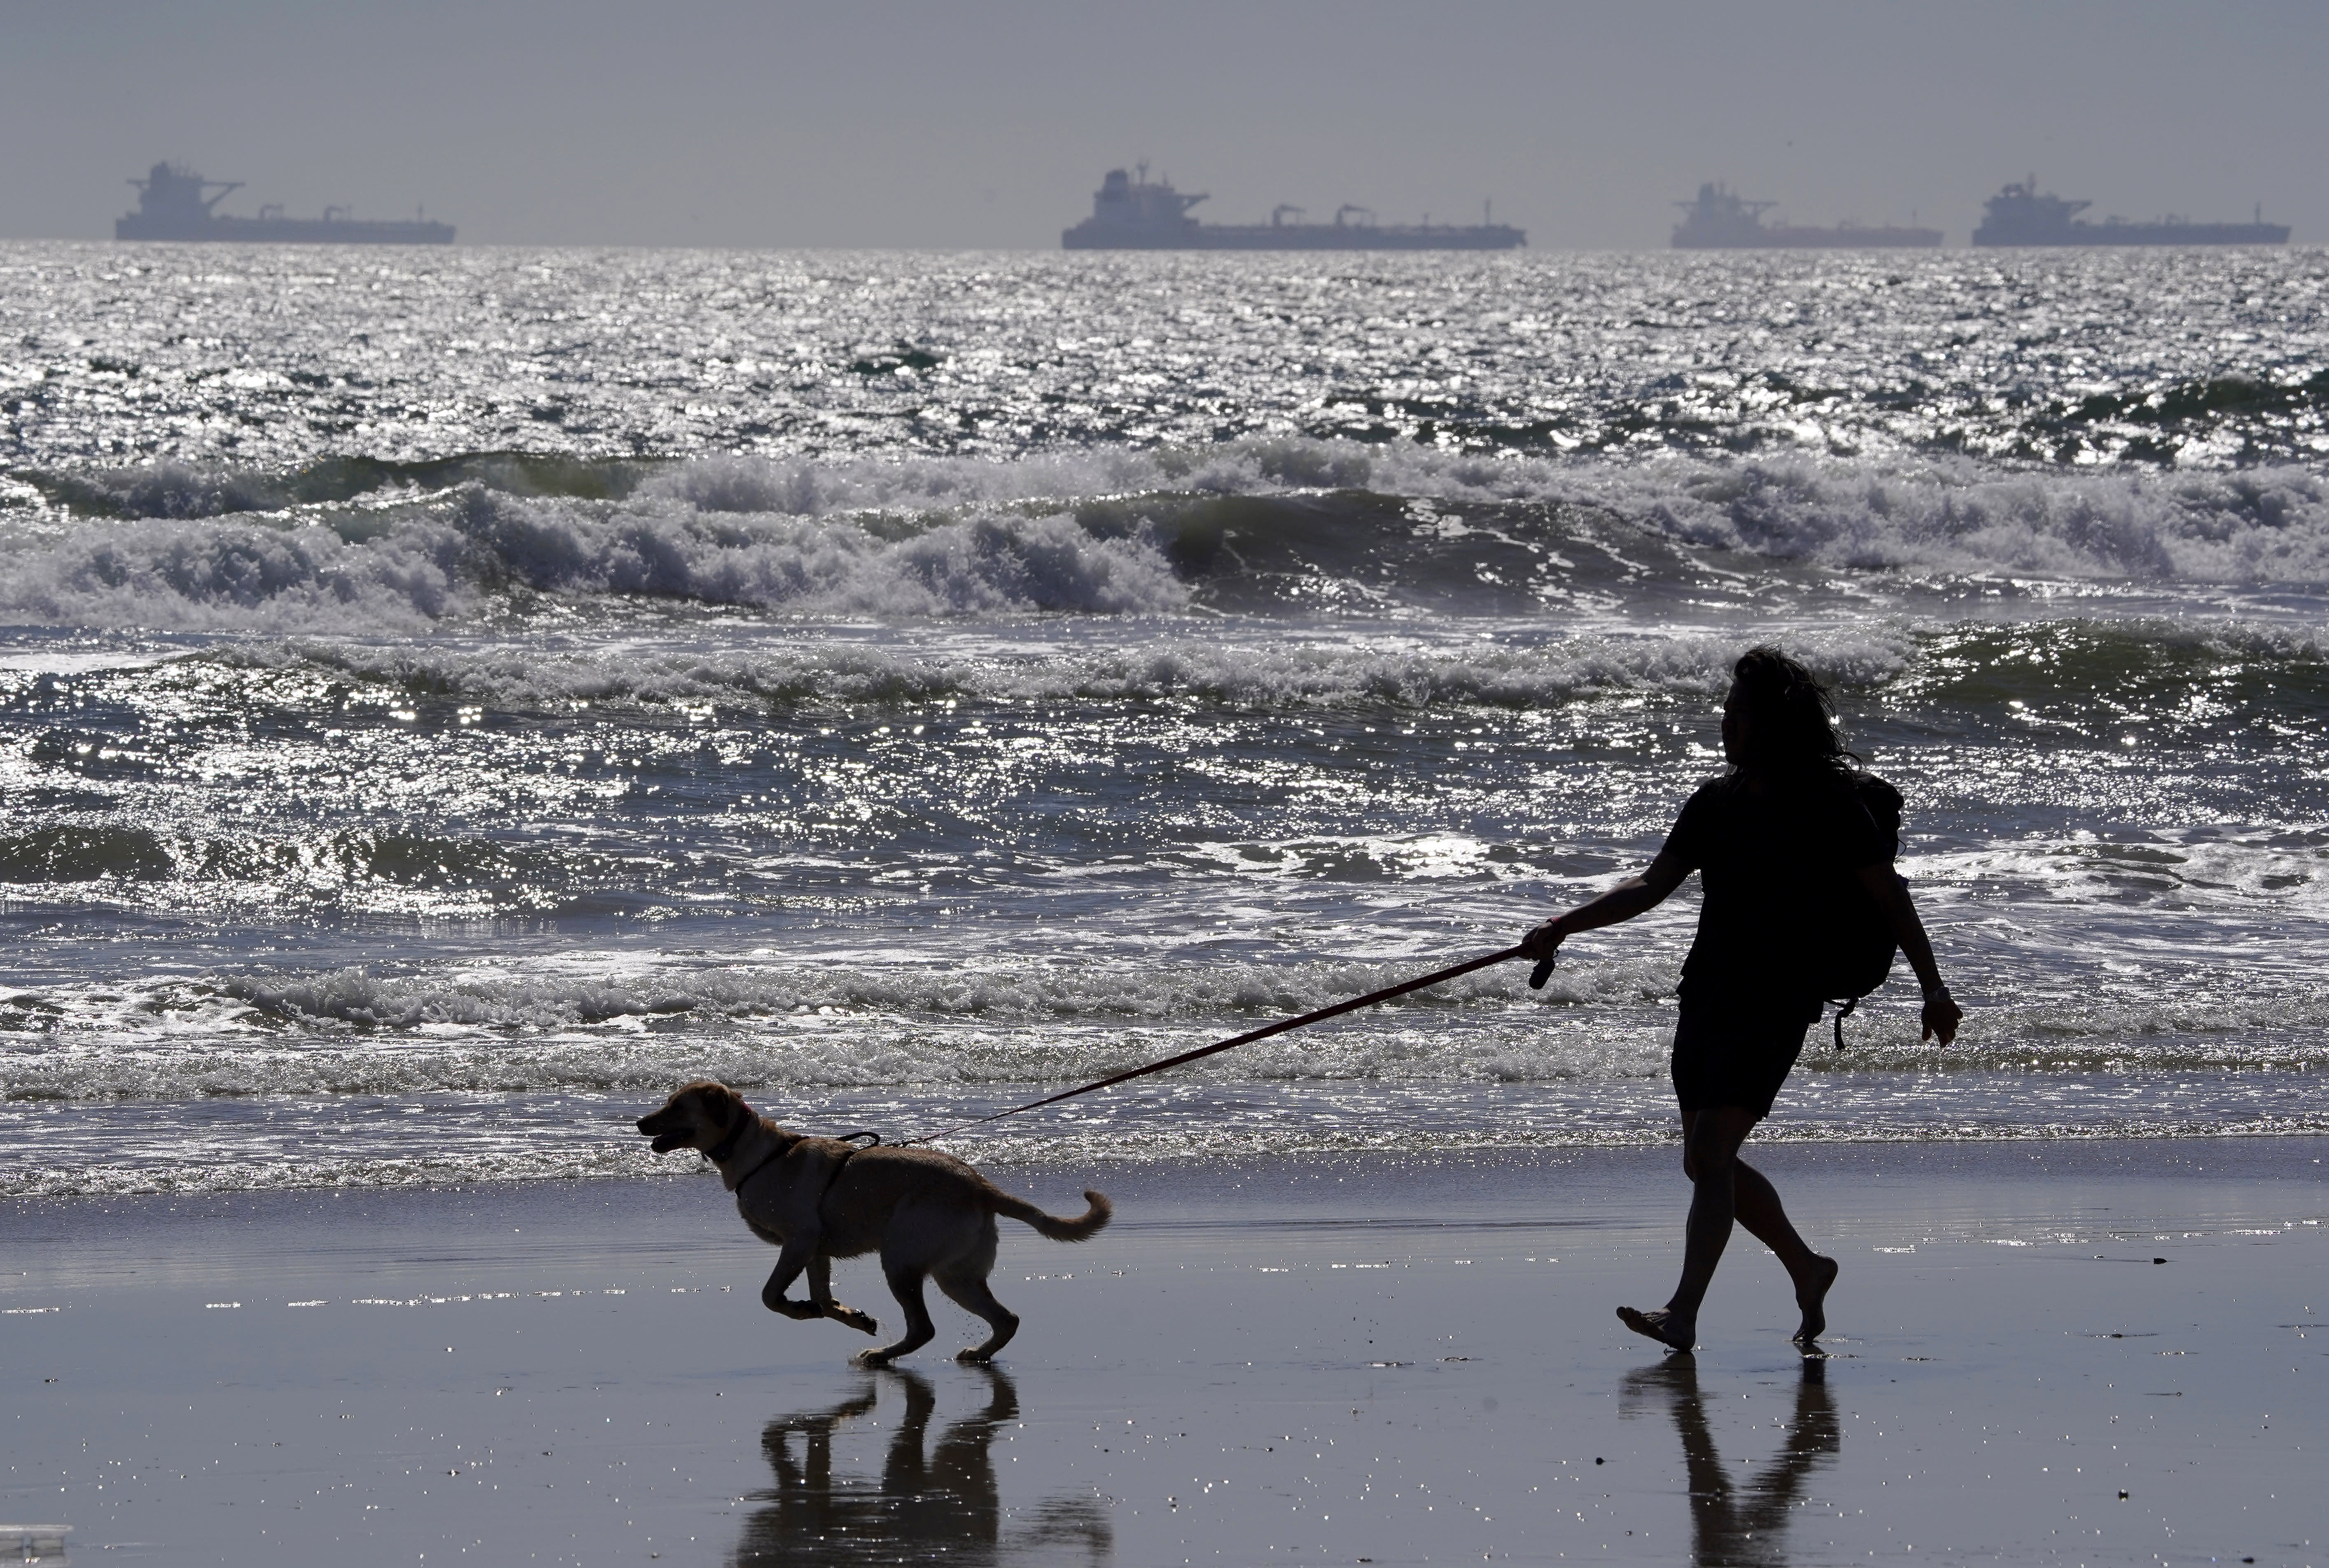 A man walks a dog as oil tankers sit offshore Wednesday, April 22, 2020, in Huntington Beach, Calif. About three dozen tankers are parked between Long Beach and the San Francisco Bay Area with nowhere to go due to lack of demand and nowhere to store the oil. (AP Photo/Mark J. Terrill)